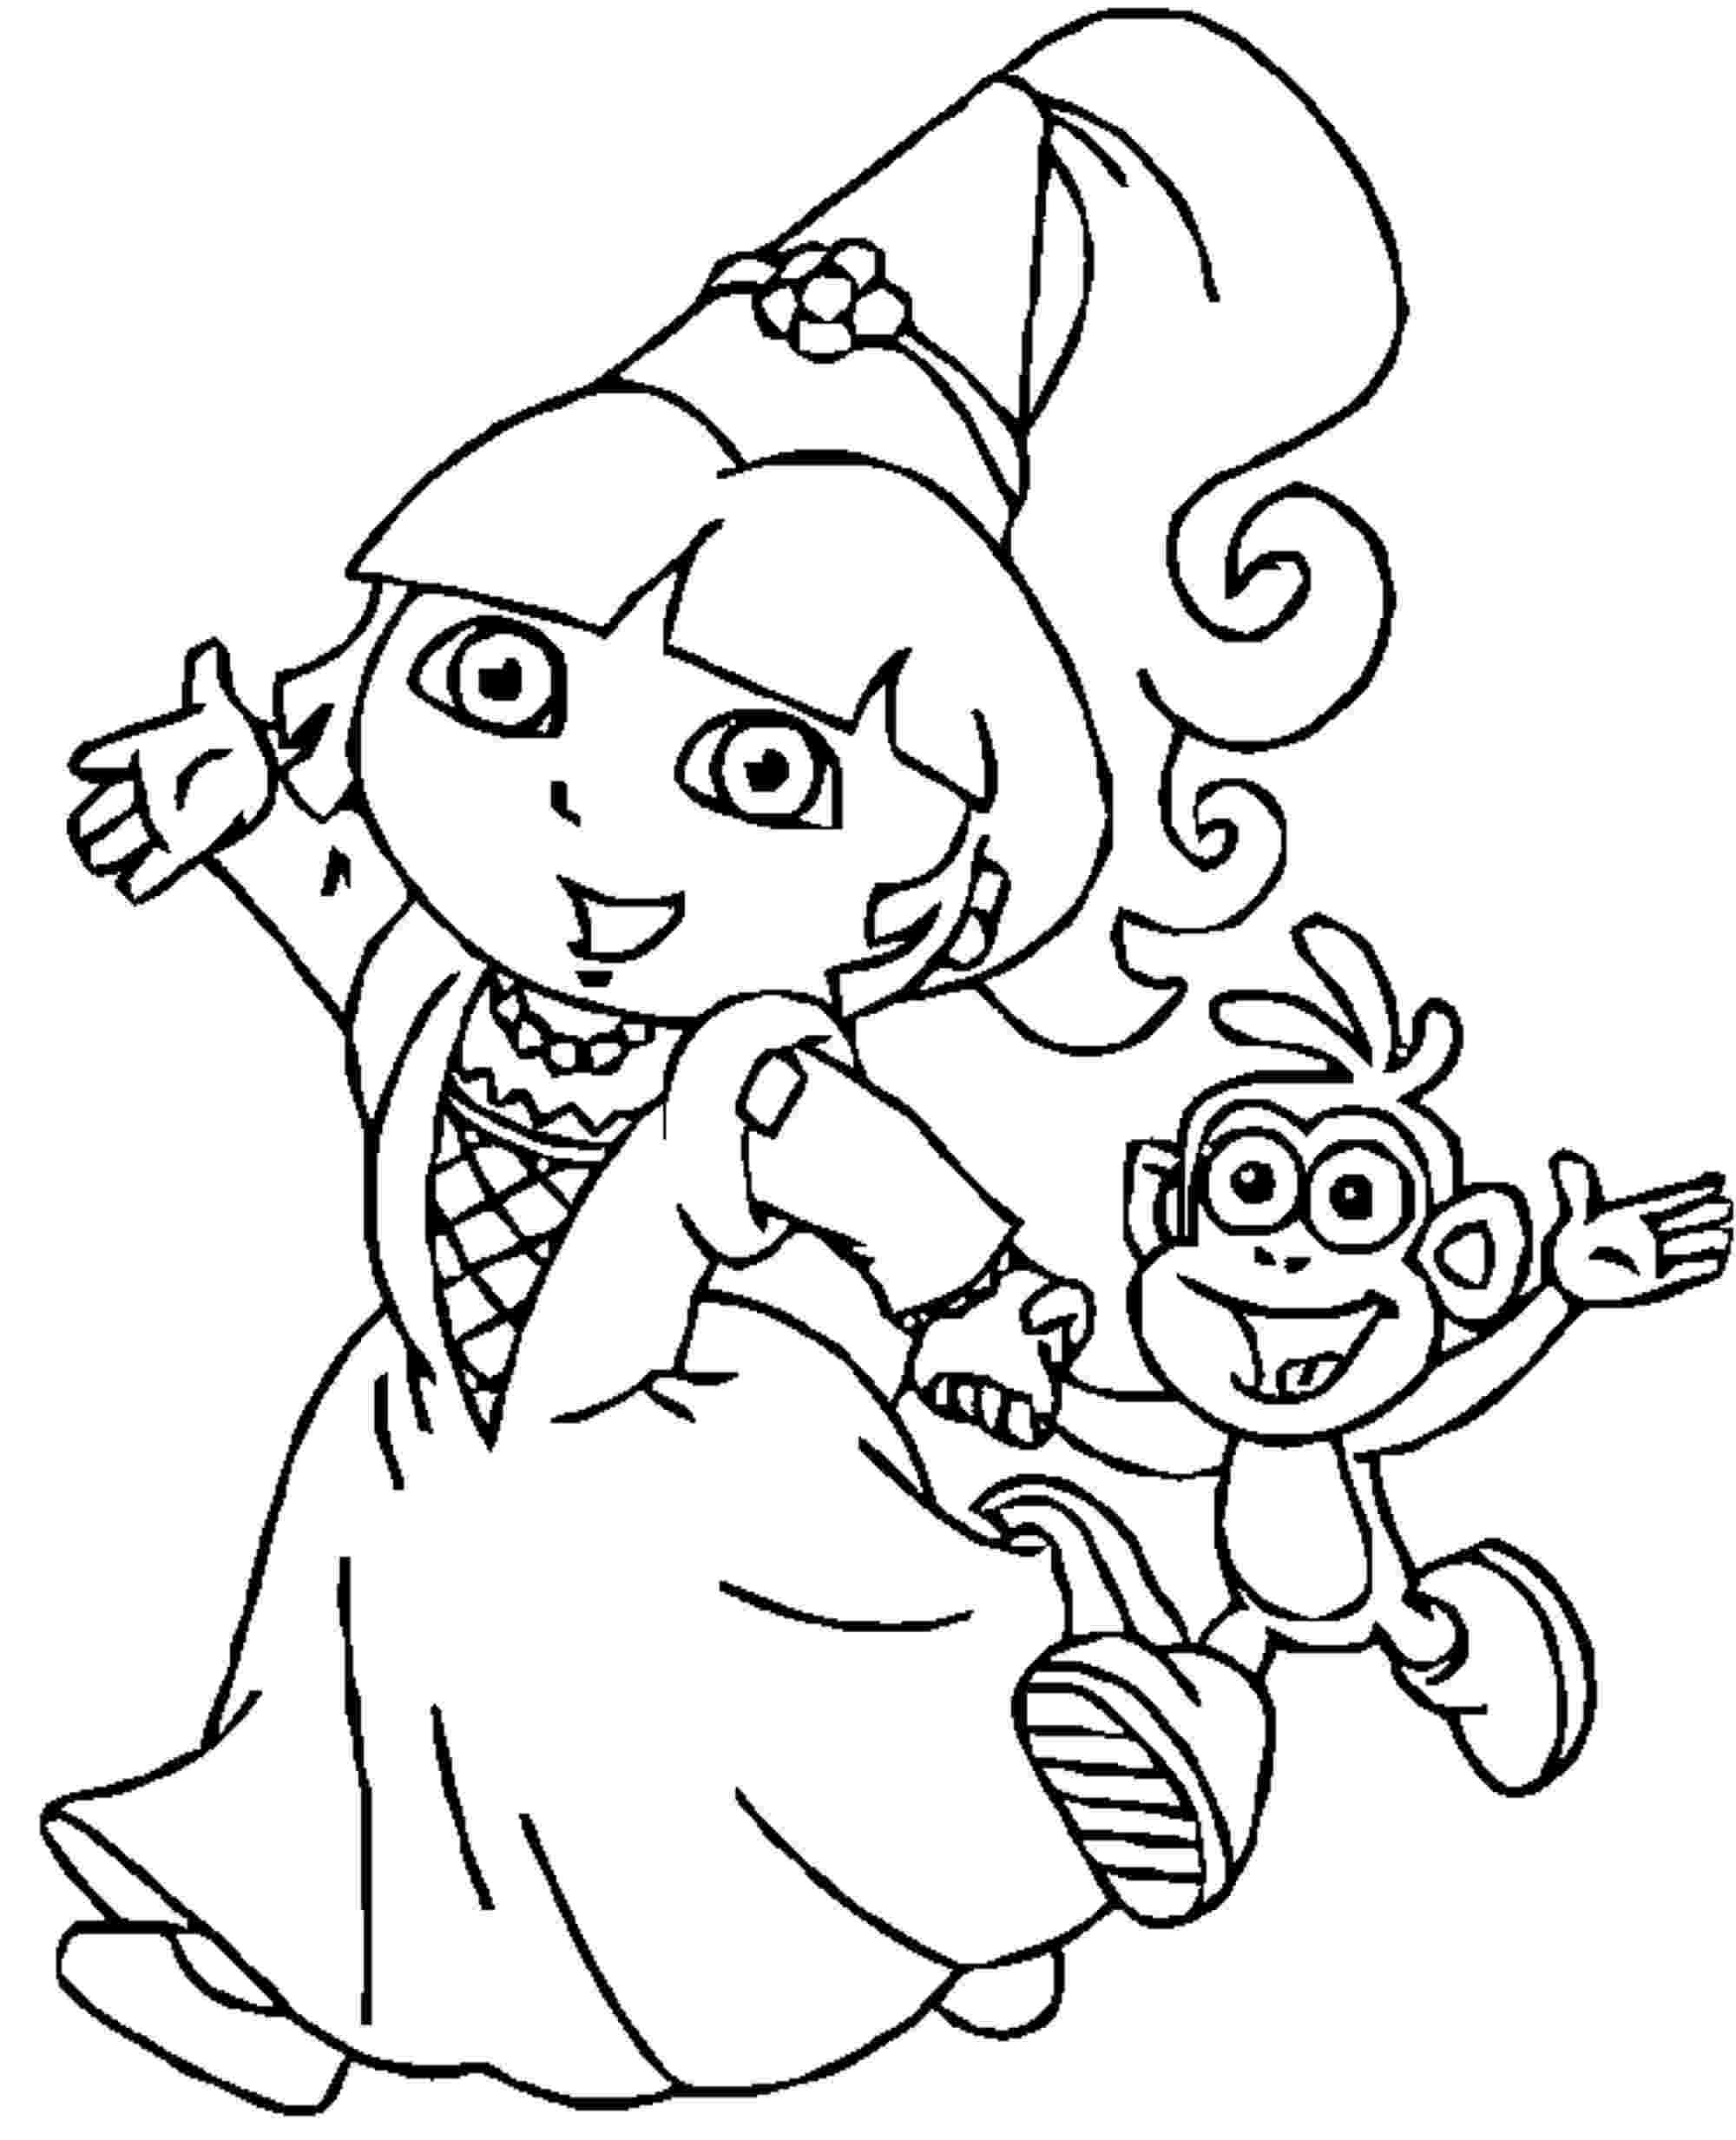 printable coloring dora dora coloring pages for kids printable free coloring printable dora